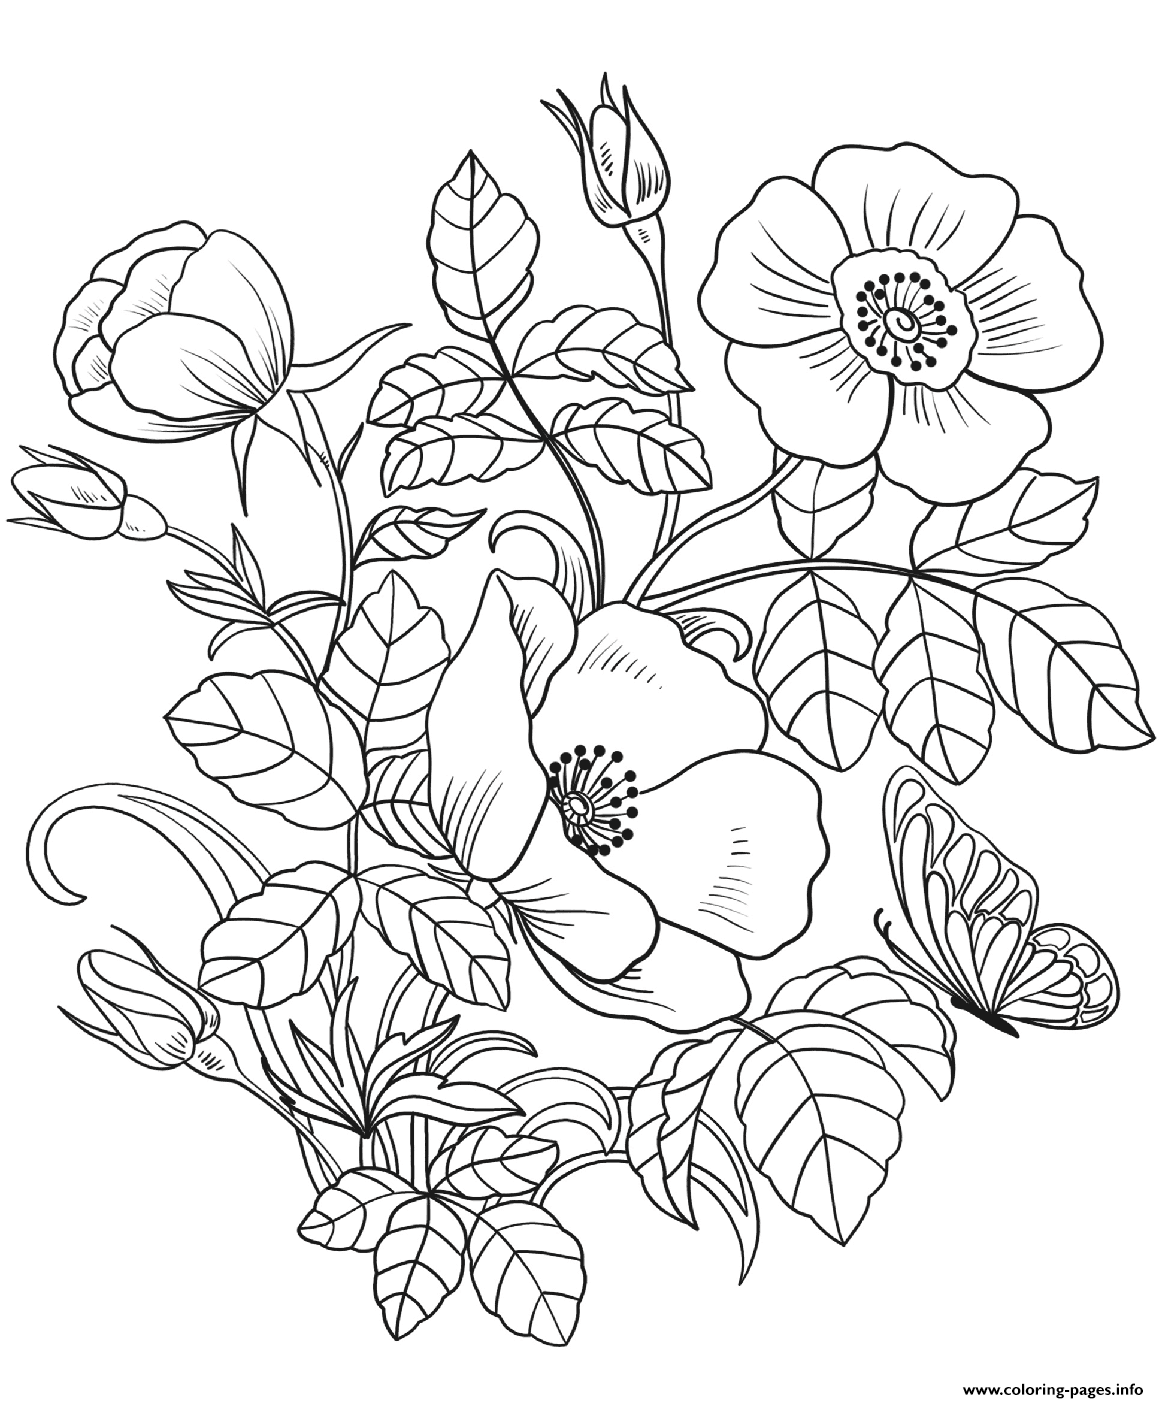 colouring page of flowers flower coloring pages for adults best coloring pages for of colouring page flowers